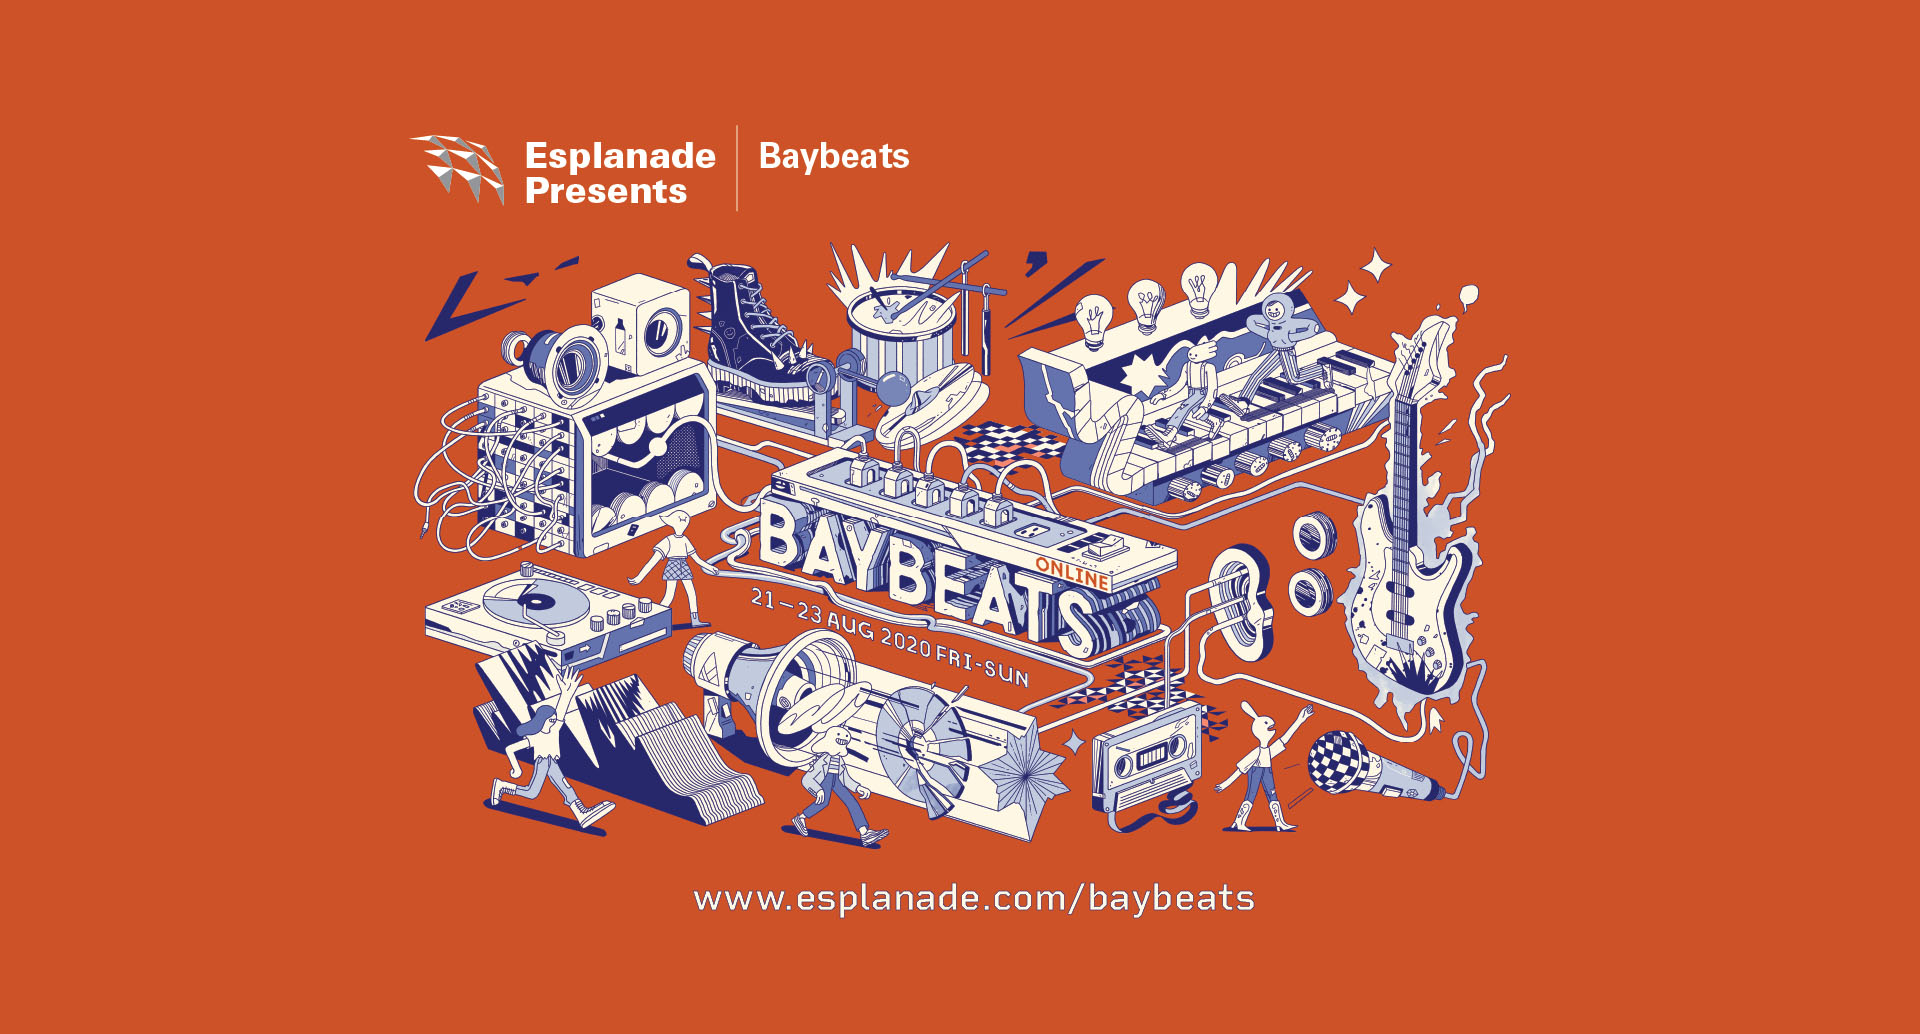 Baybeats Online featuring Tell Lie Vision, Iman's League, Forests and more!